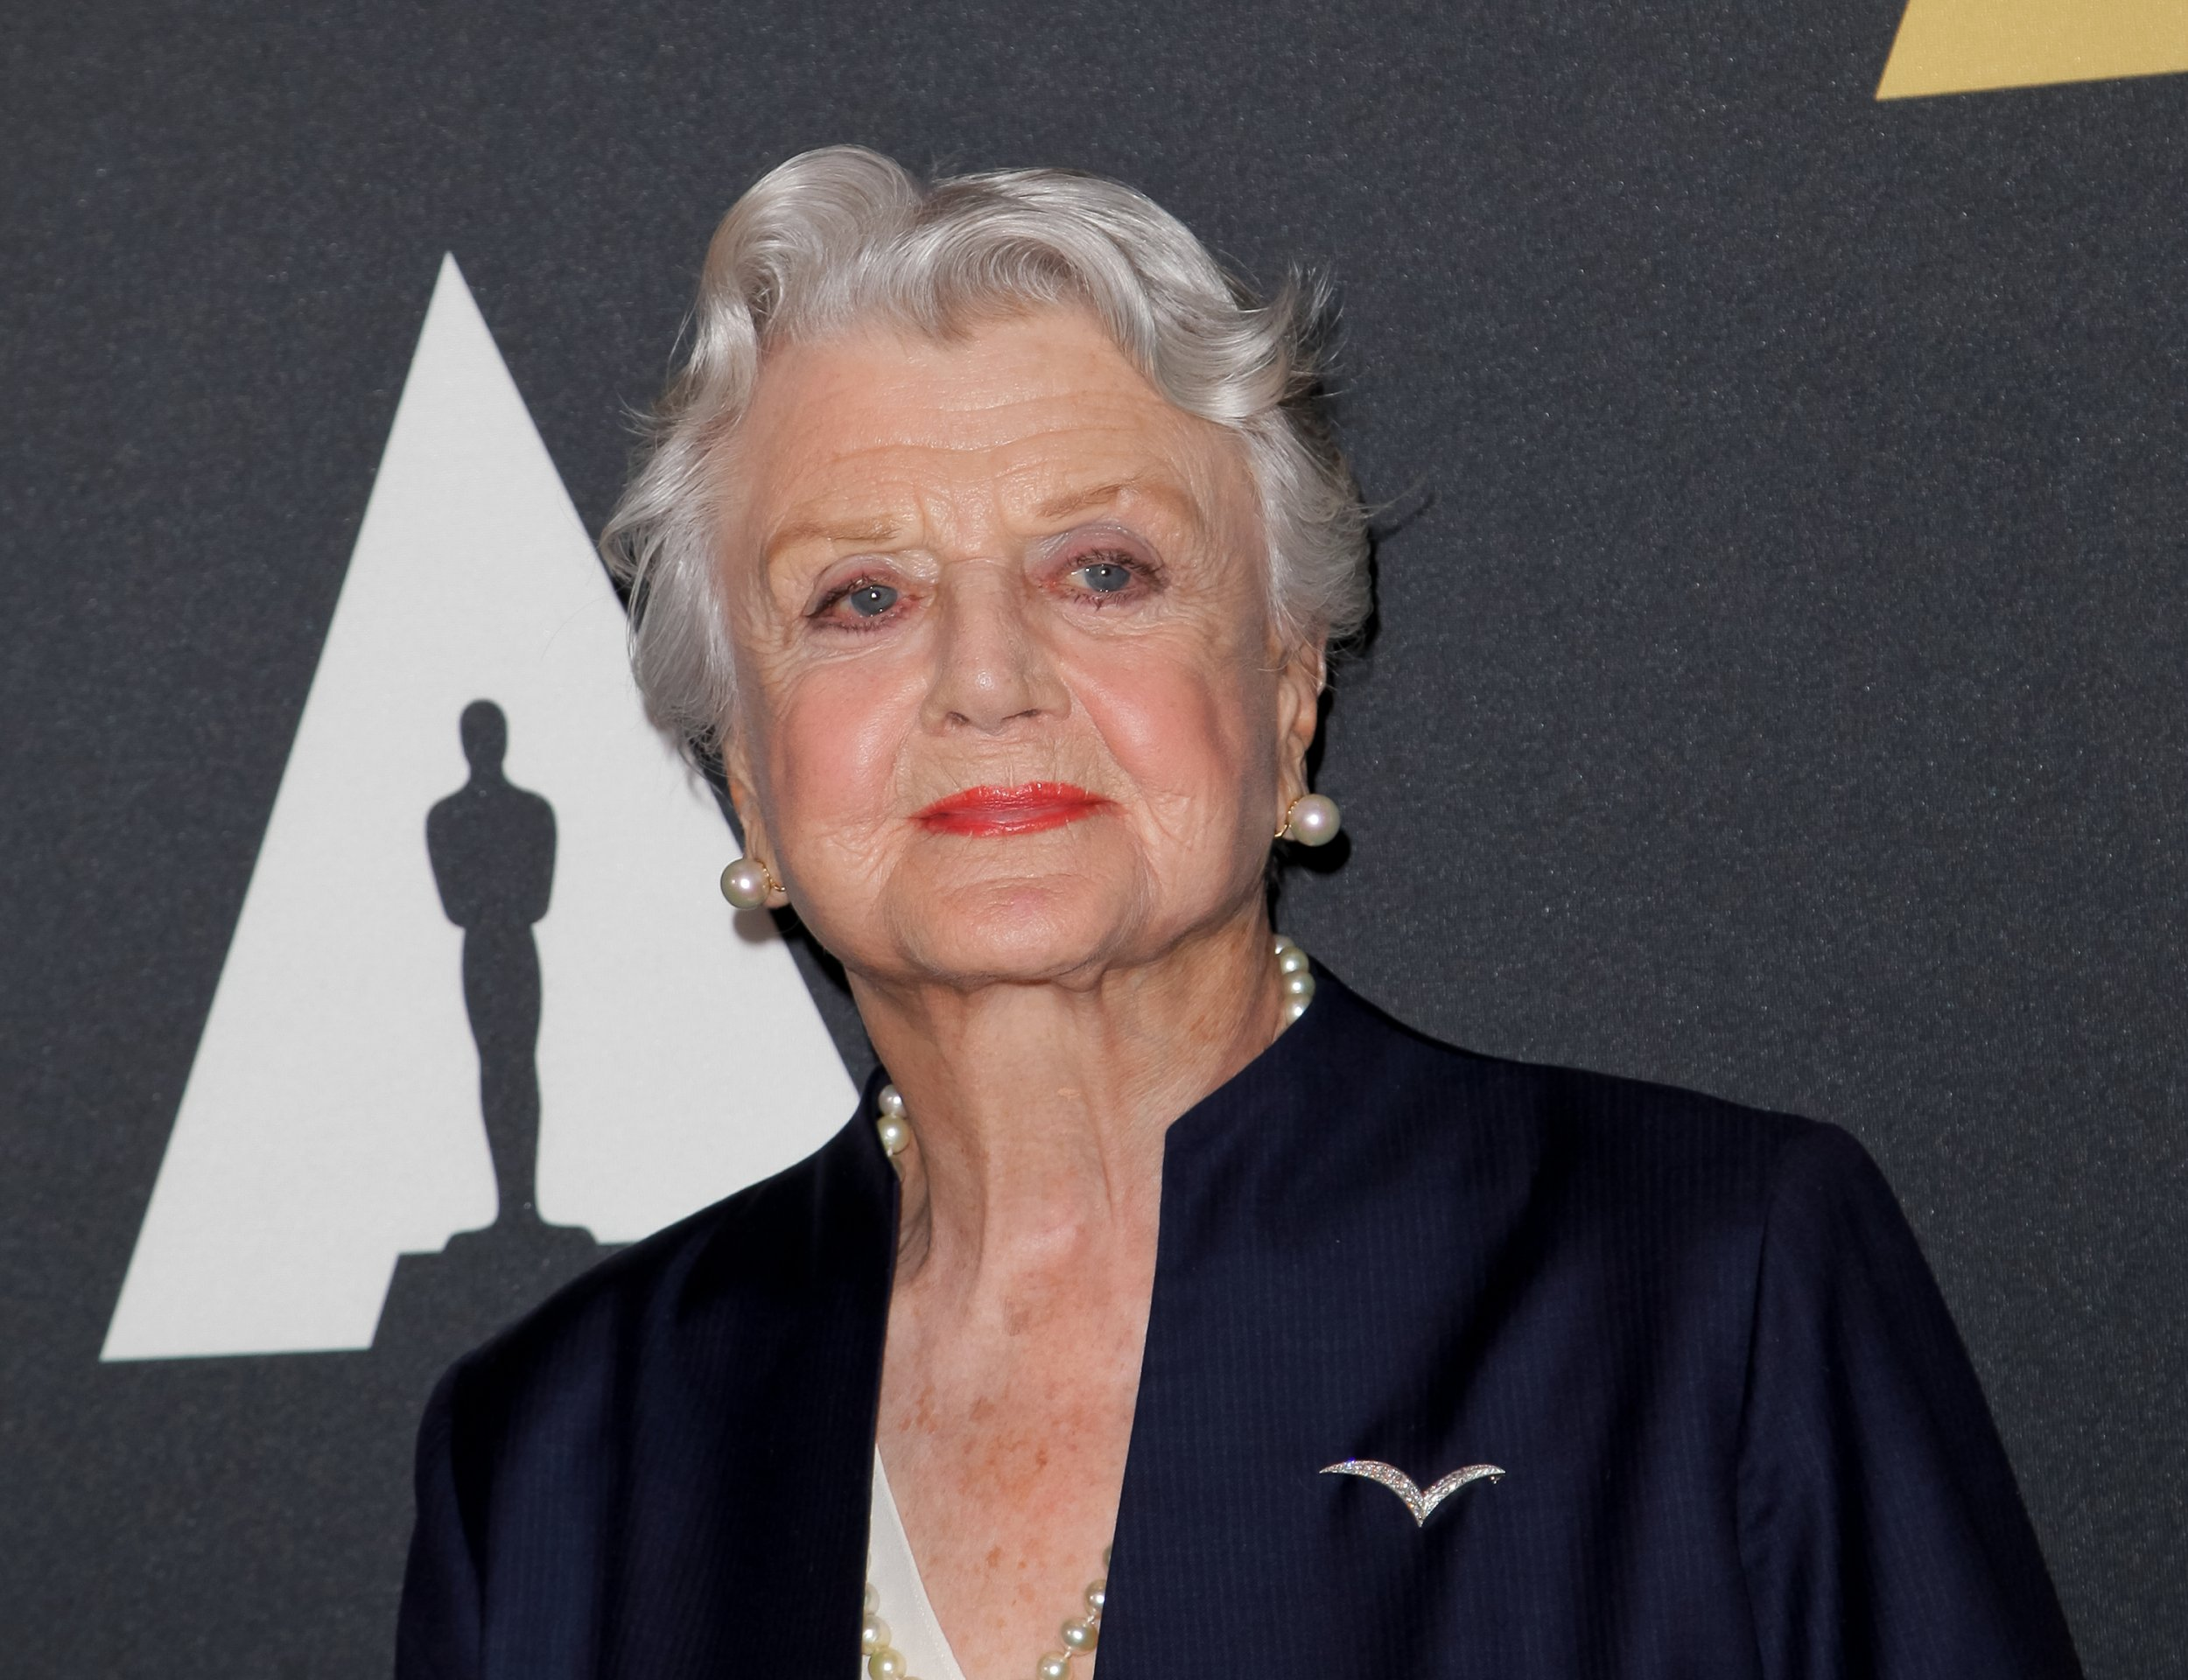 Angela Lansbury, 90, is sticking her fingers up to old age and heading back to Broadway